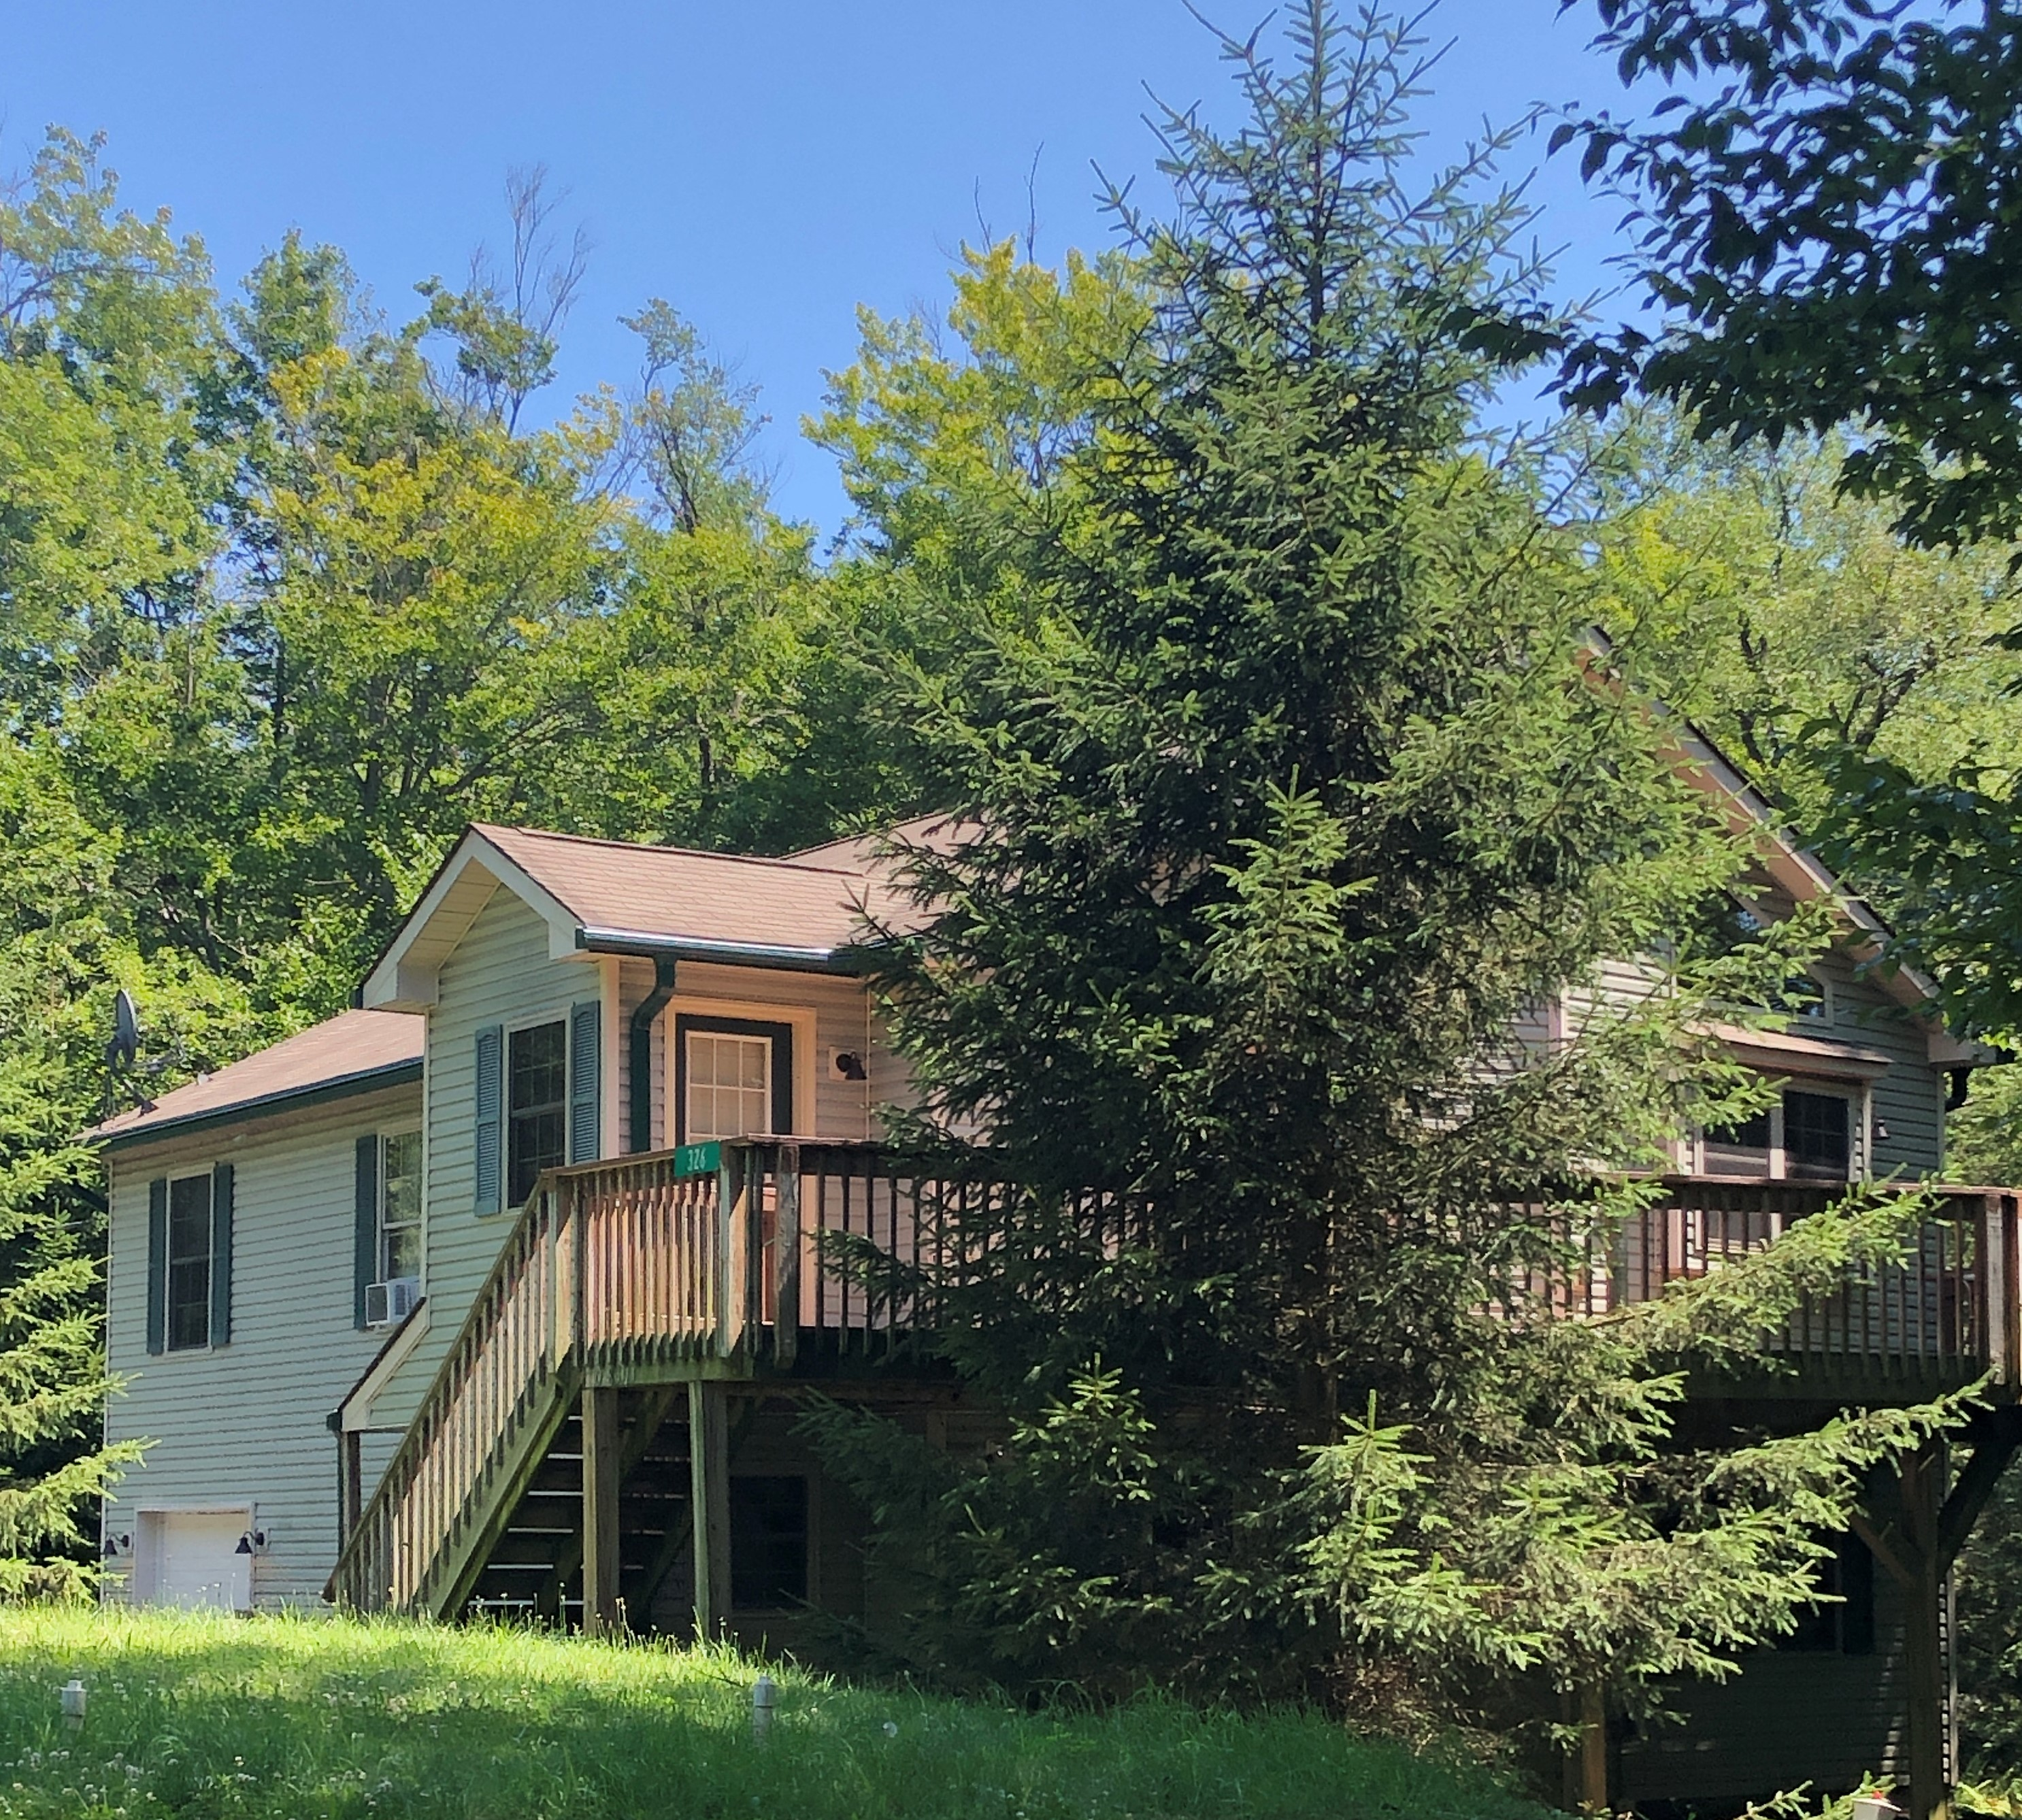 Pocono Lake – 5 Bedroom 3 Bath $230,000